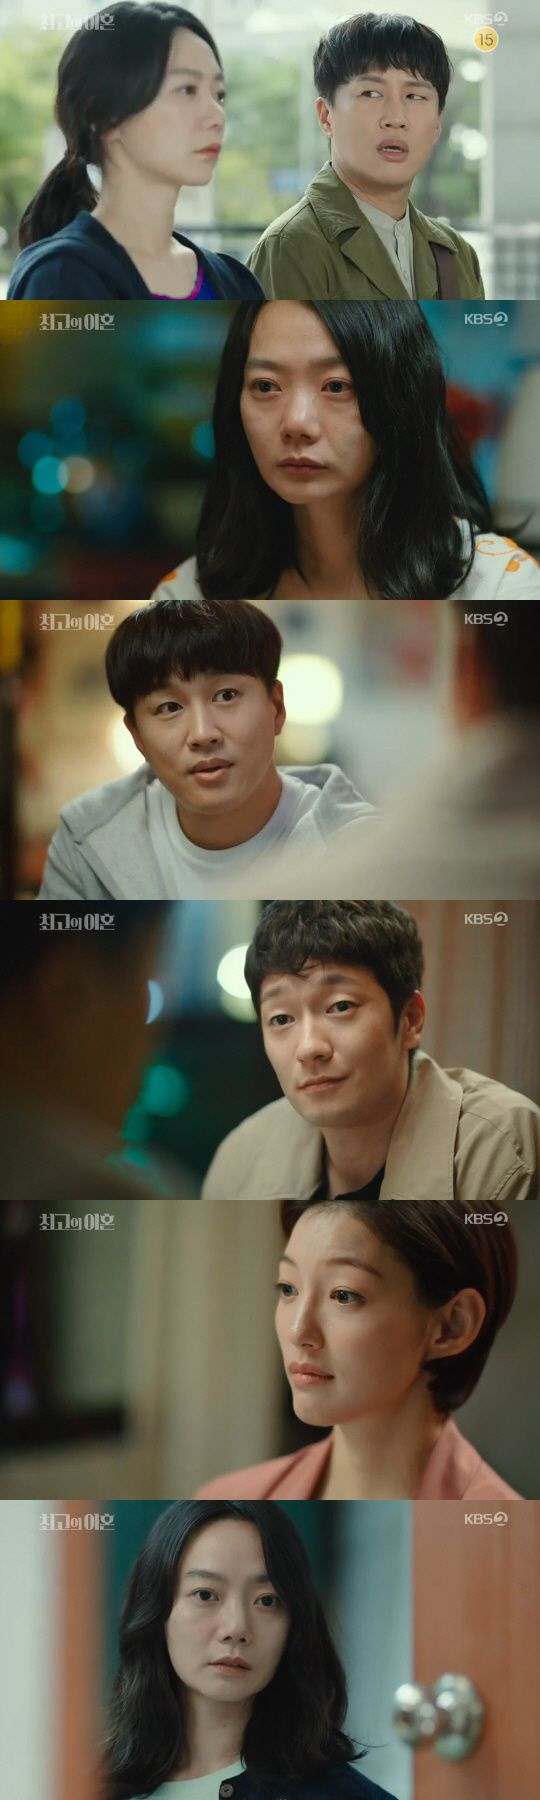 Ask K Pop Cha Tae Hyun Was Shocked By Lee S Confession The Best Divorce Cha Tae Hyun Confessions Divorce